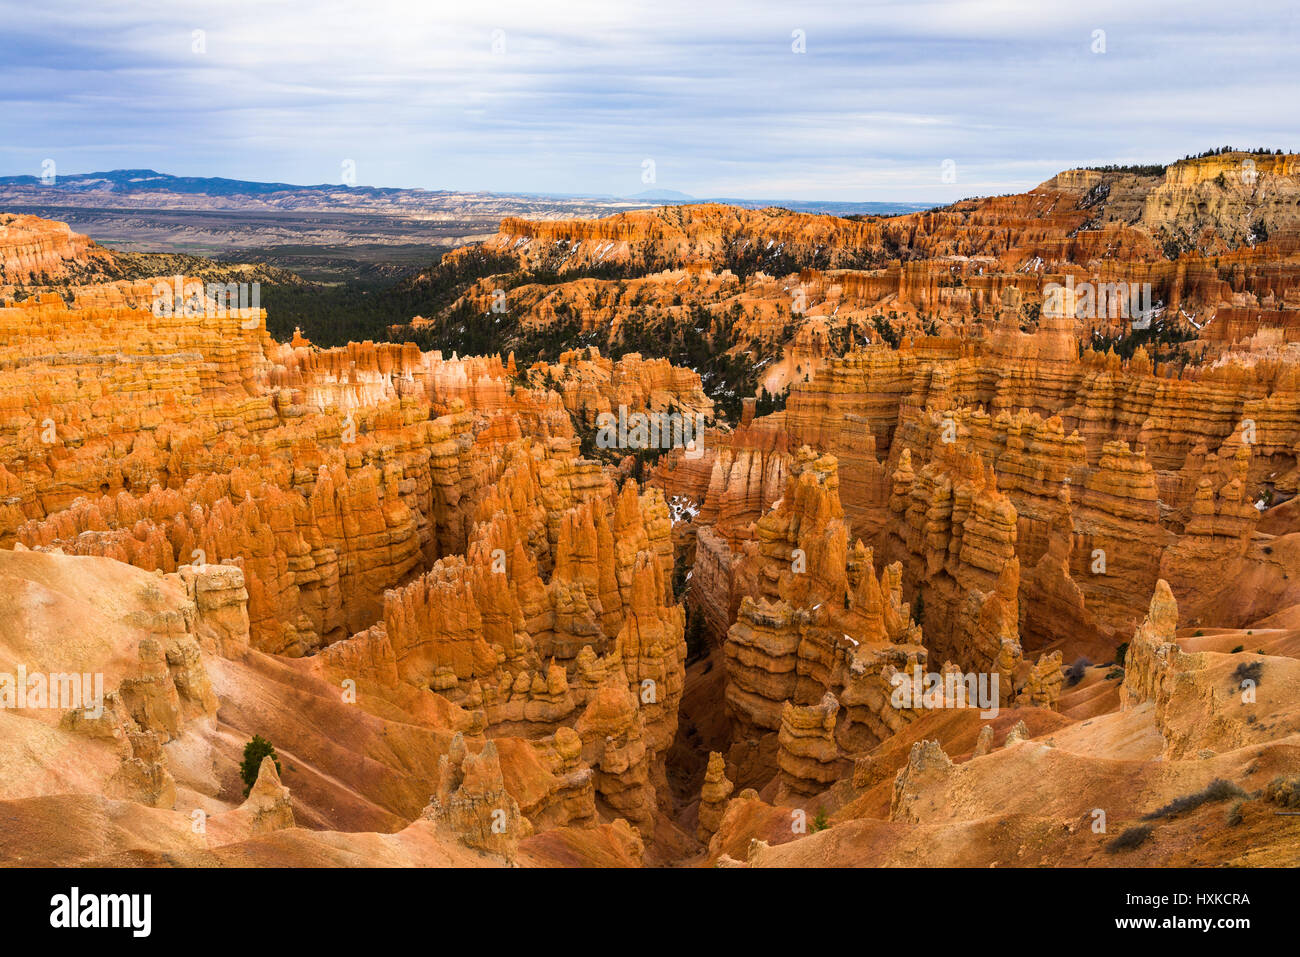 Looking out over the orange sandstone pillars of Bryce Canyon from the rim on a cloudy day, Bryce Canyon National - Stock Image